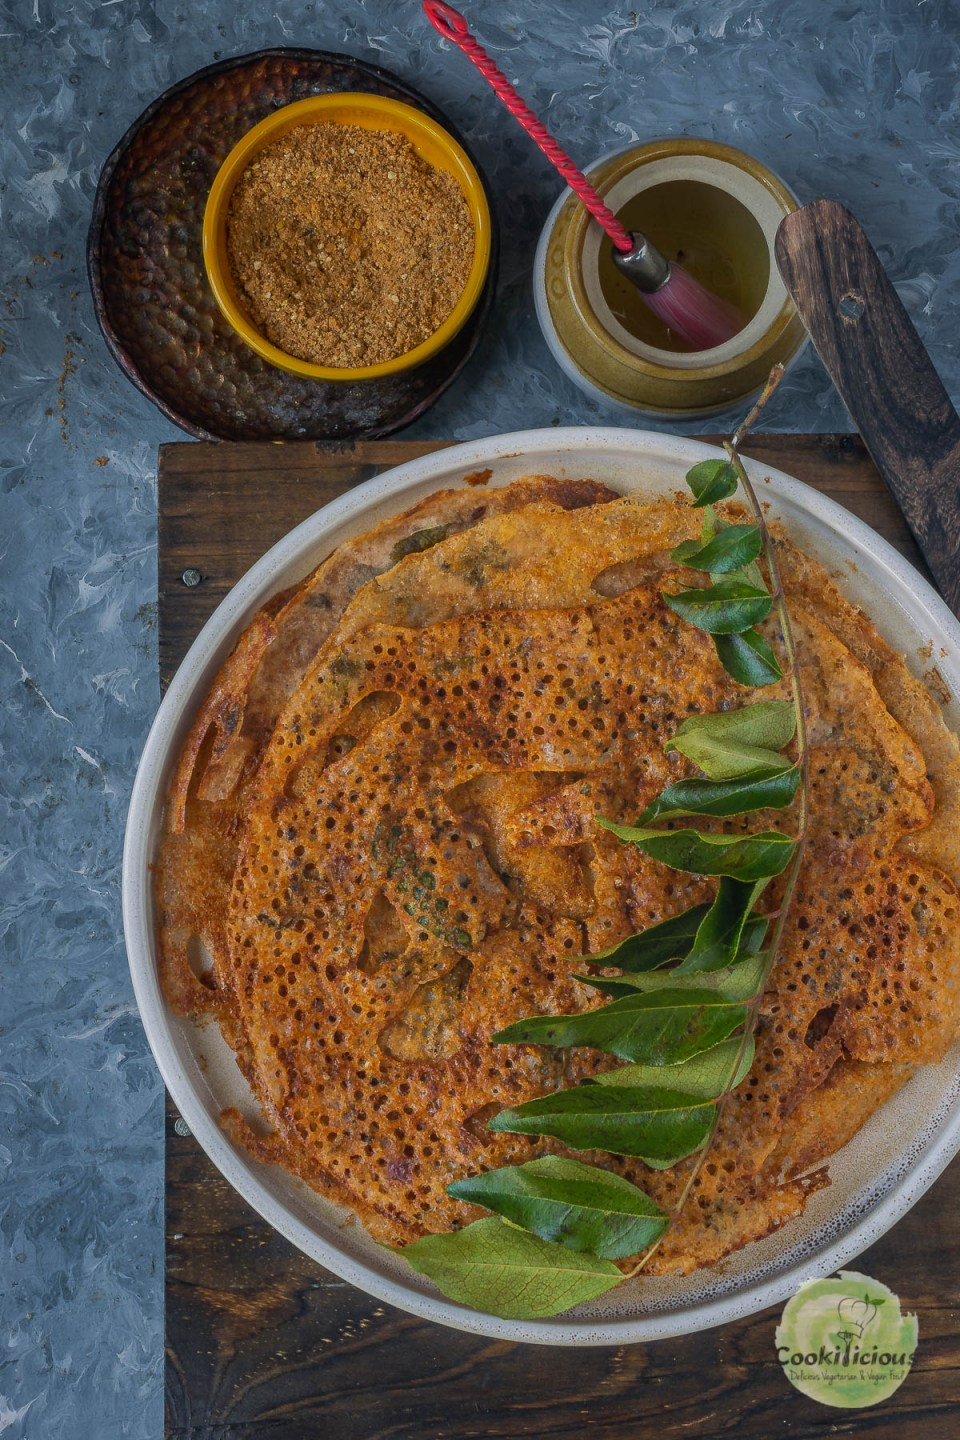 a round plate with Wheat Dosa | Instant Wheat Rava Dosa in it